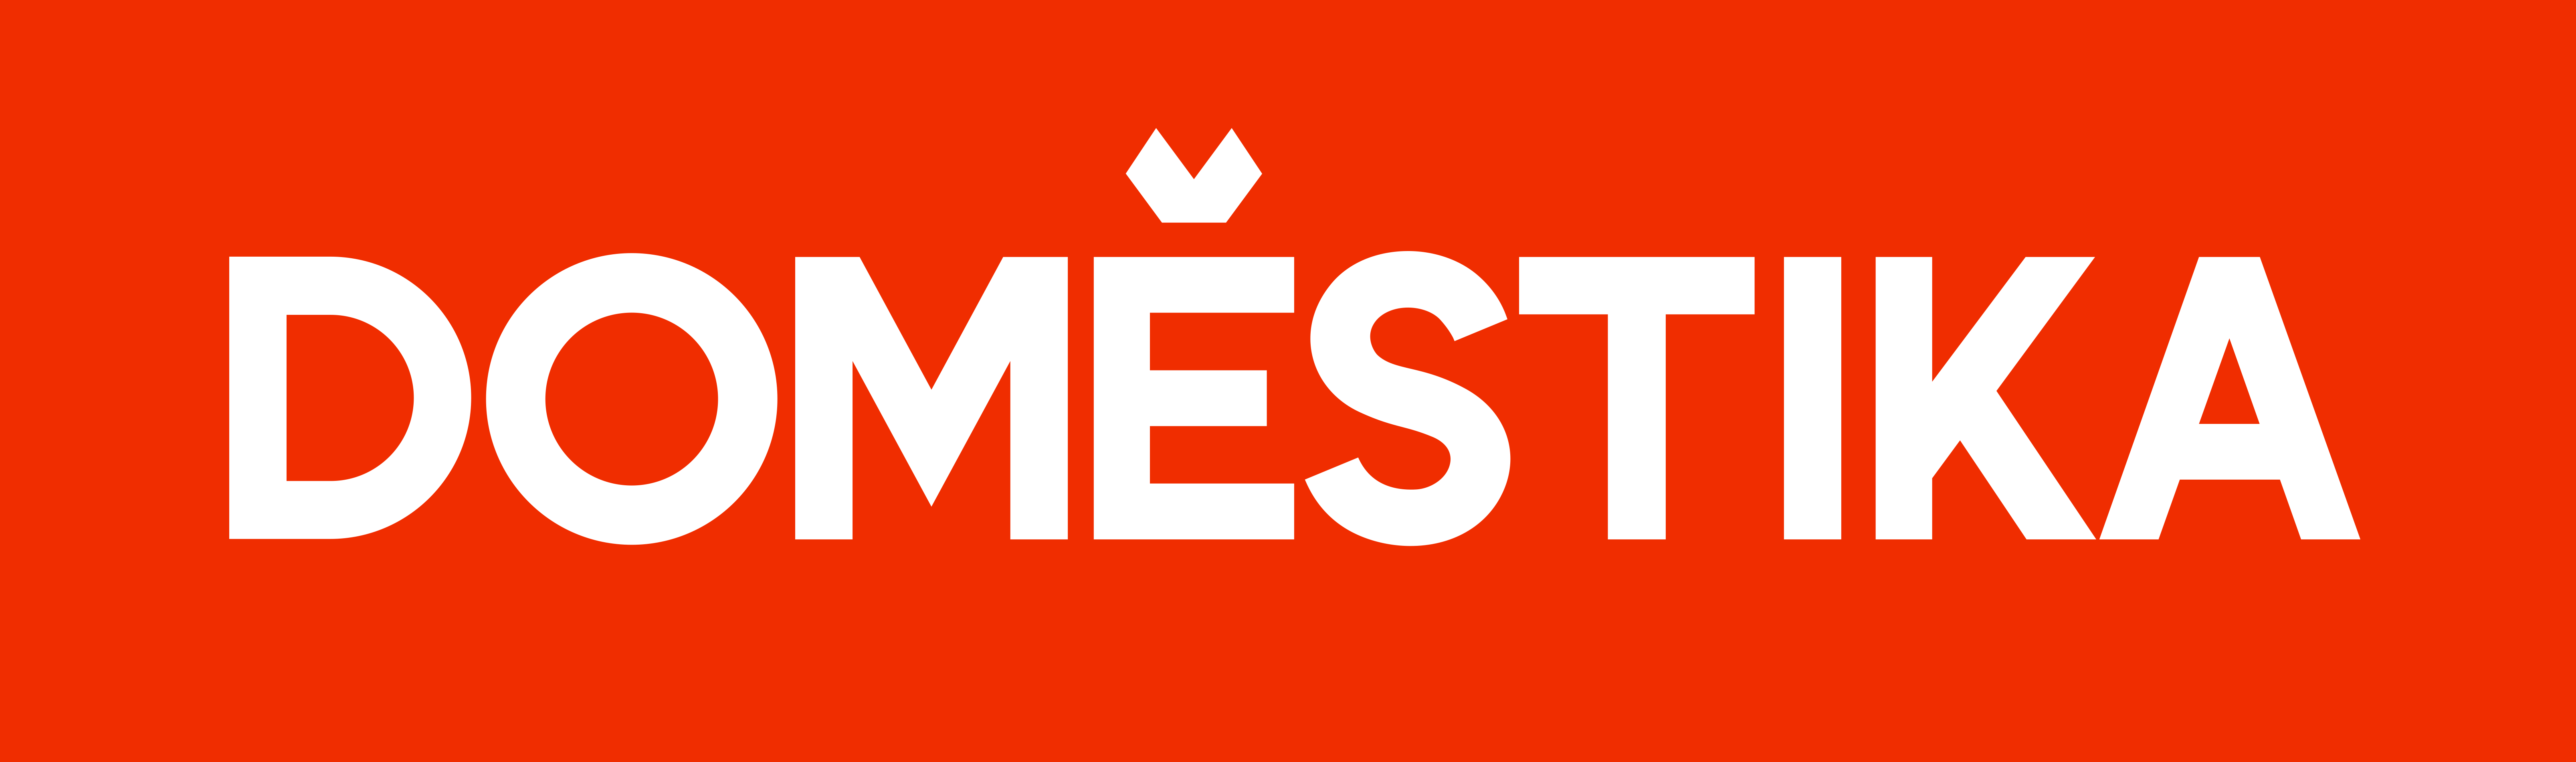 Domestika - white logo (Red background #F02D00).png